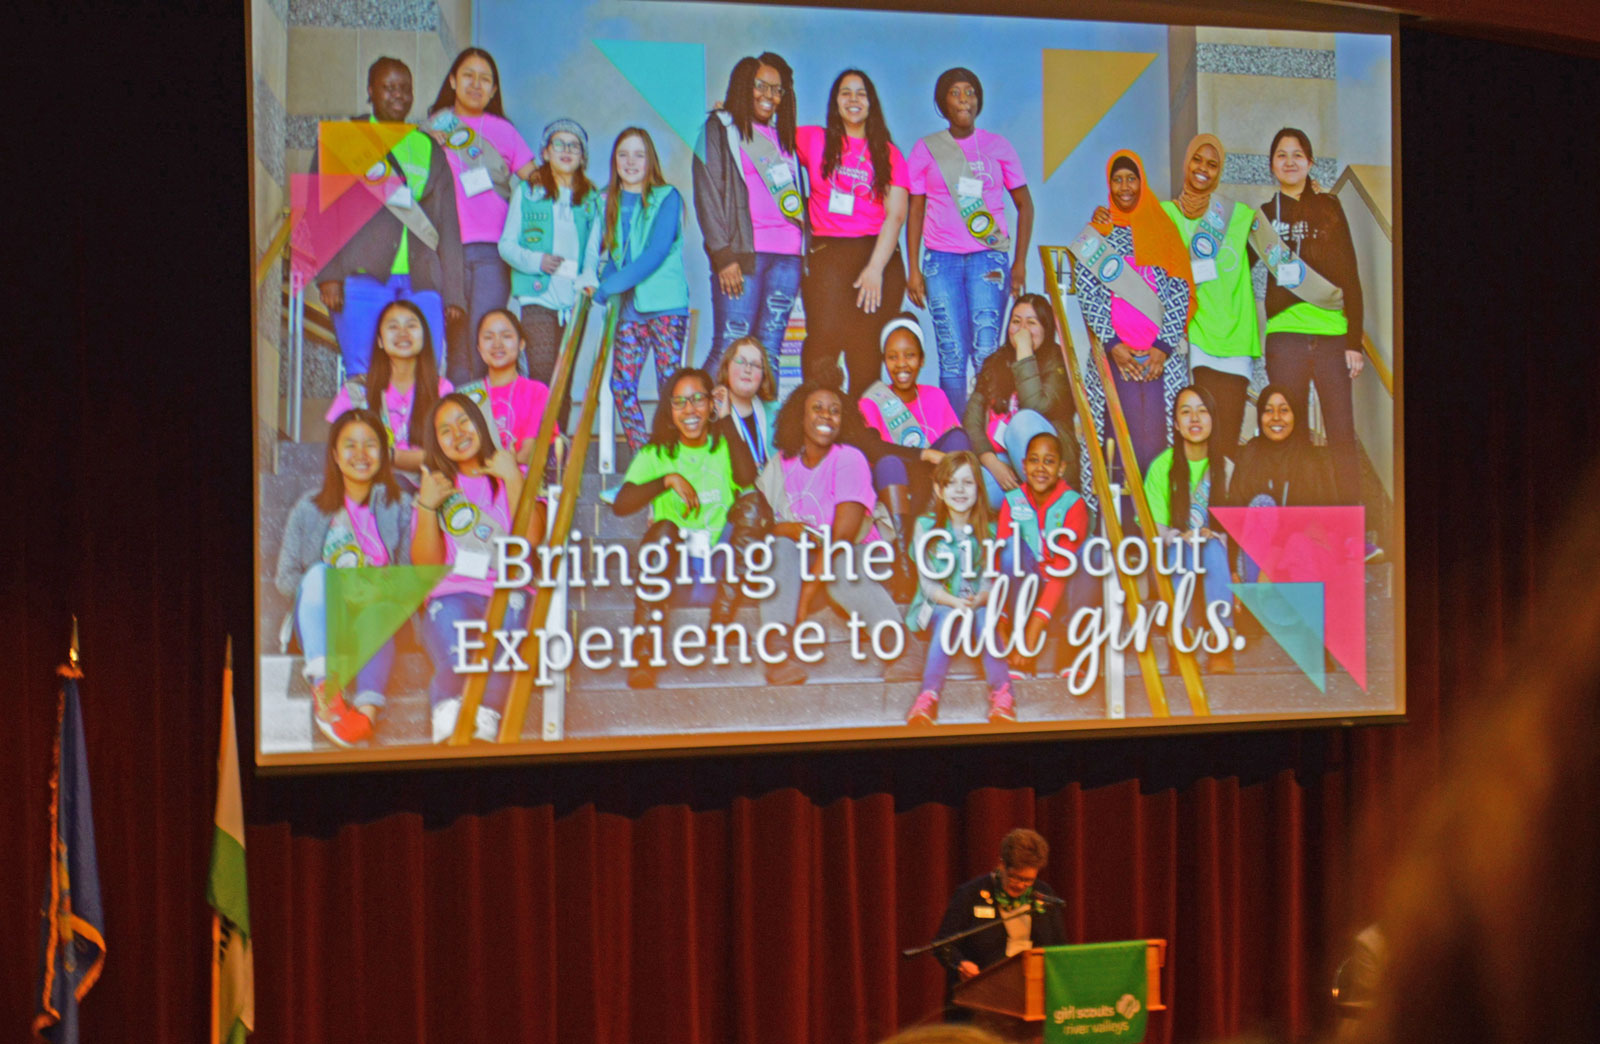 Ms. Tish Bolger, the CEO of GSRV, discusses the ConnectZ program, which supports girls as they develop knowledge and skills for a positive future, emphasising once again that Girl Scouts is for Every Girl